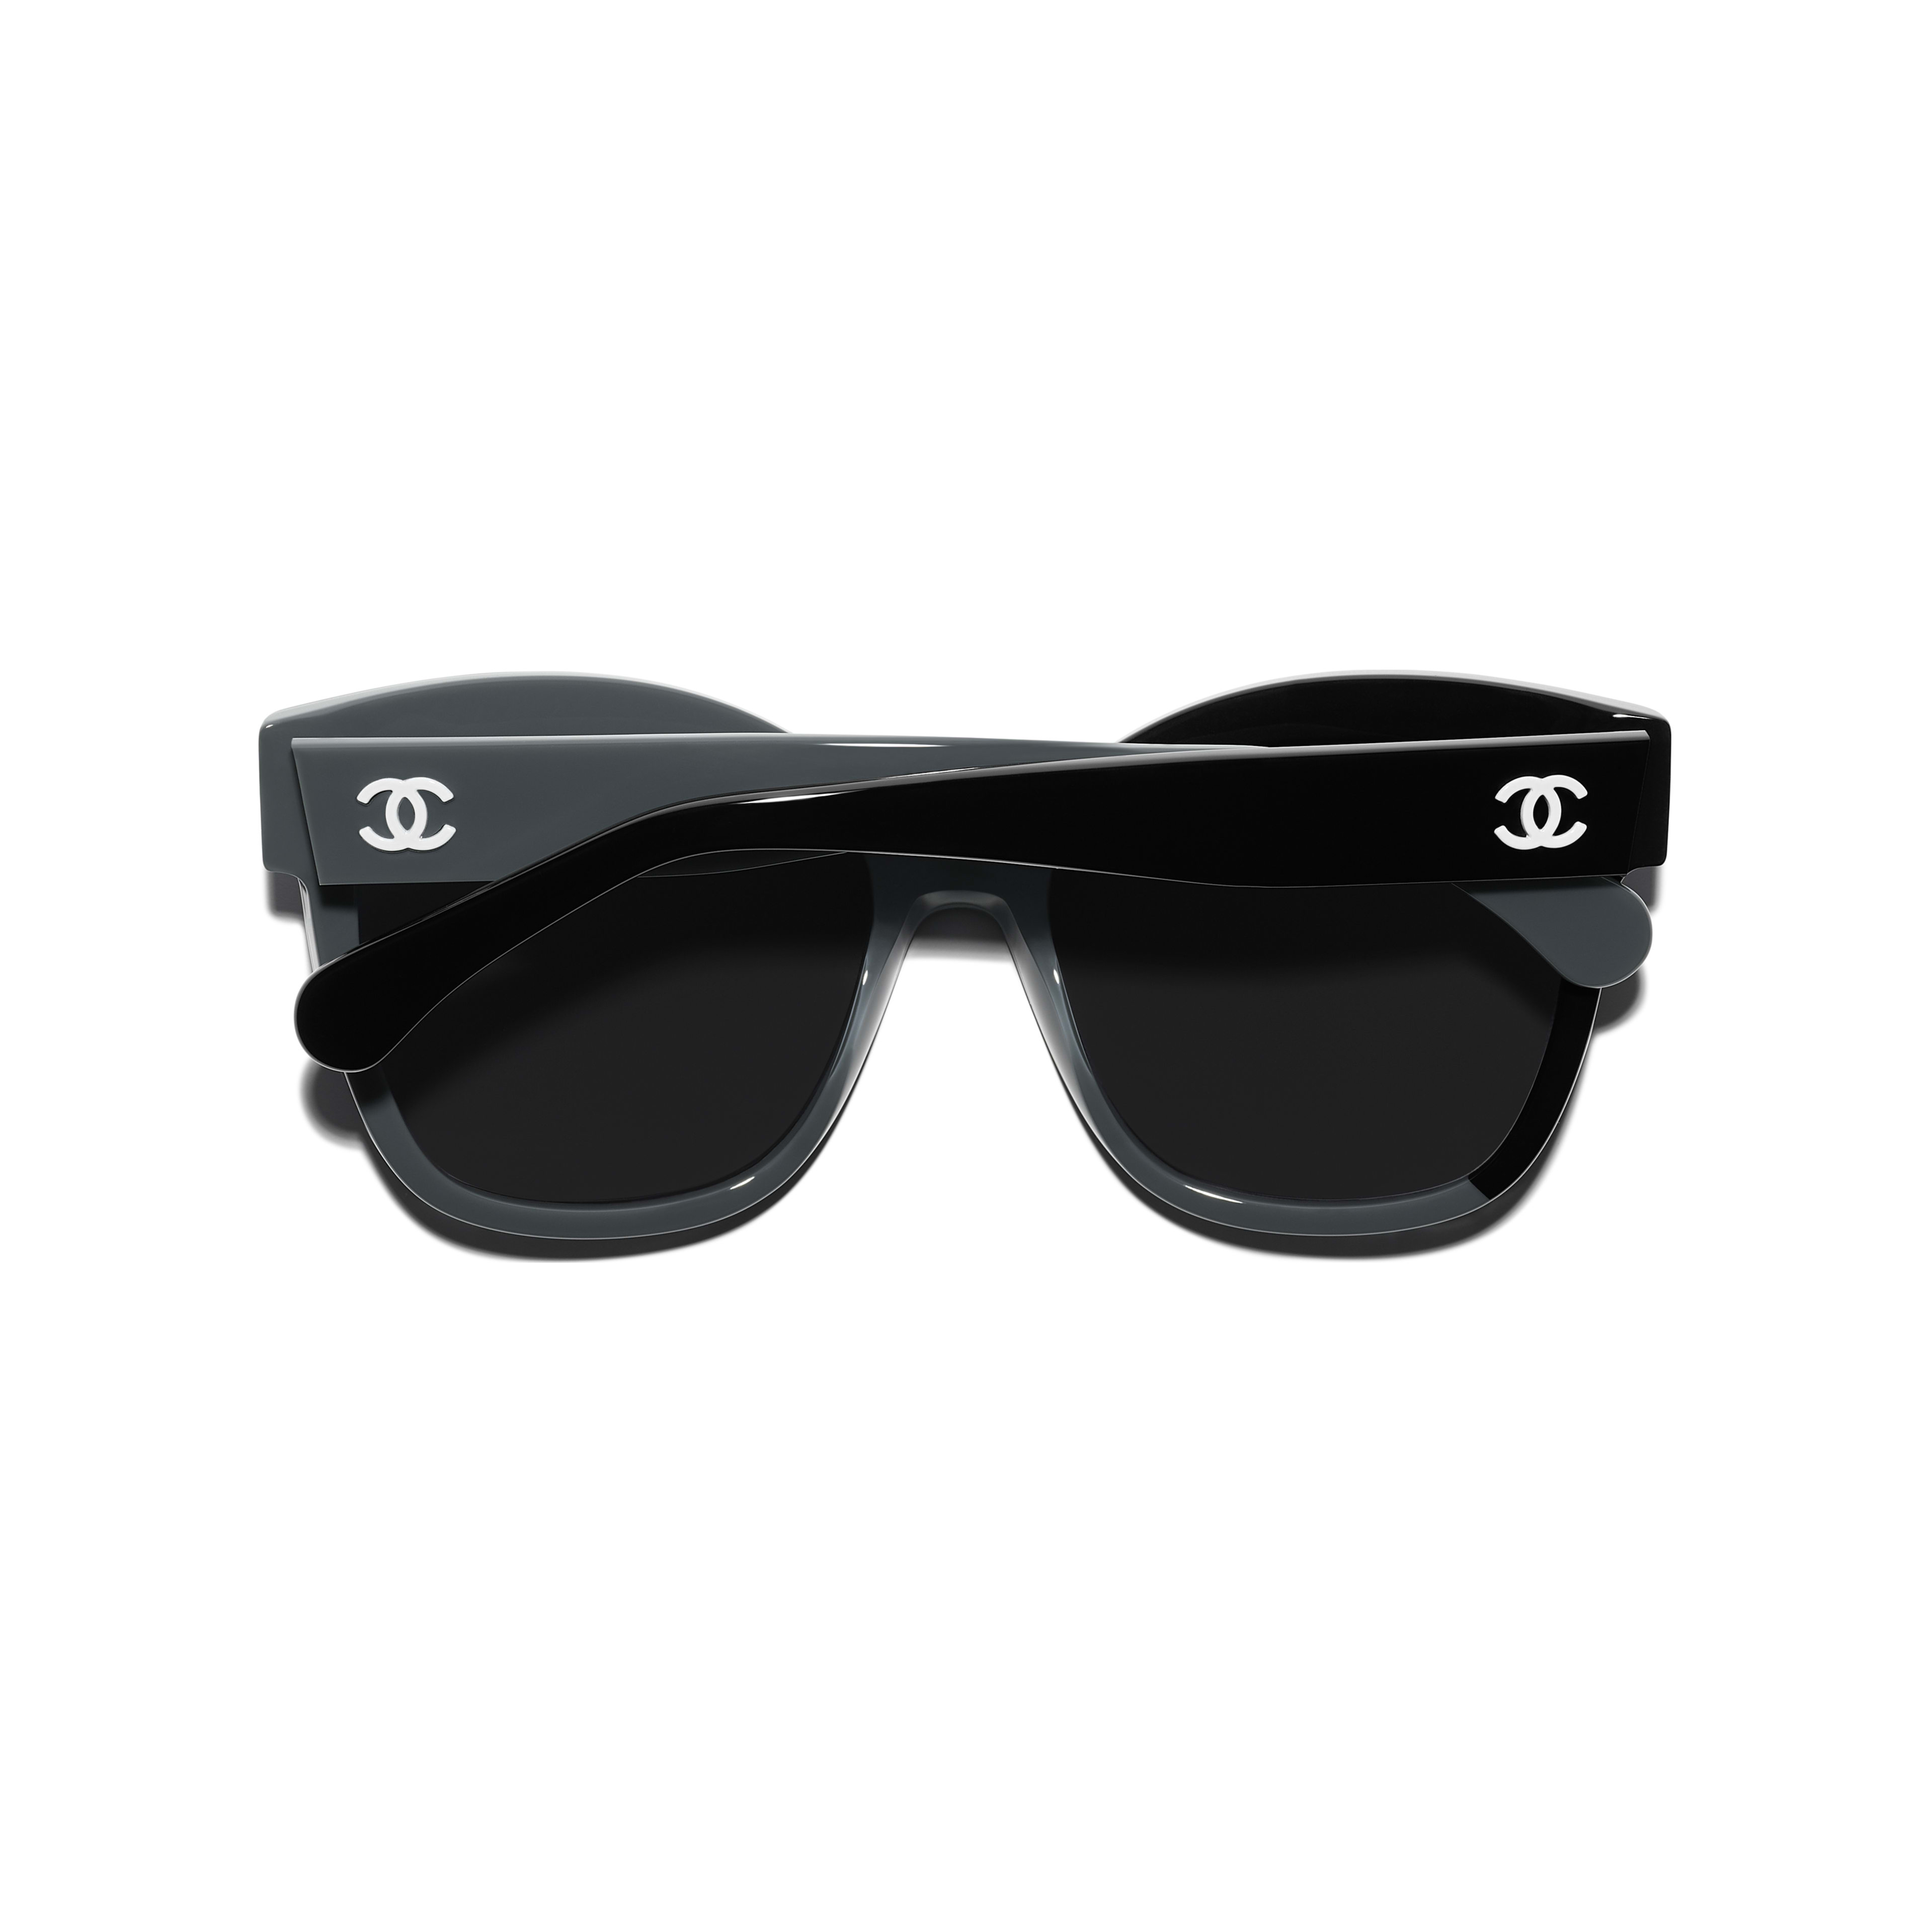 Butterfly Sunglasses - Black & Gray - Acetate - CHANEL - Extra view - see standard sized version